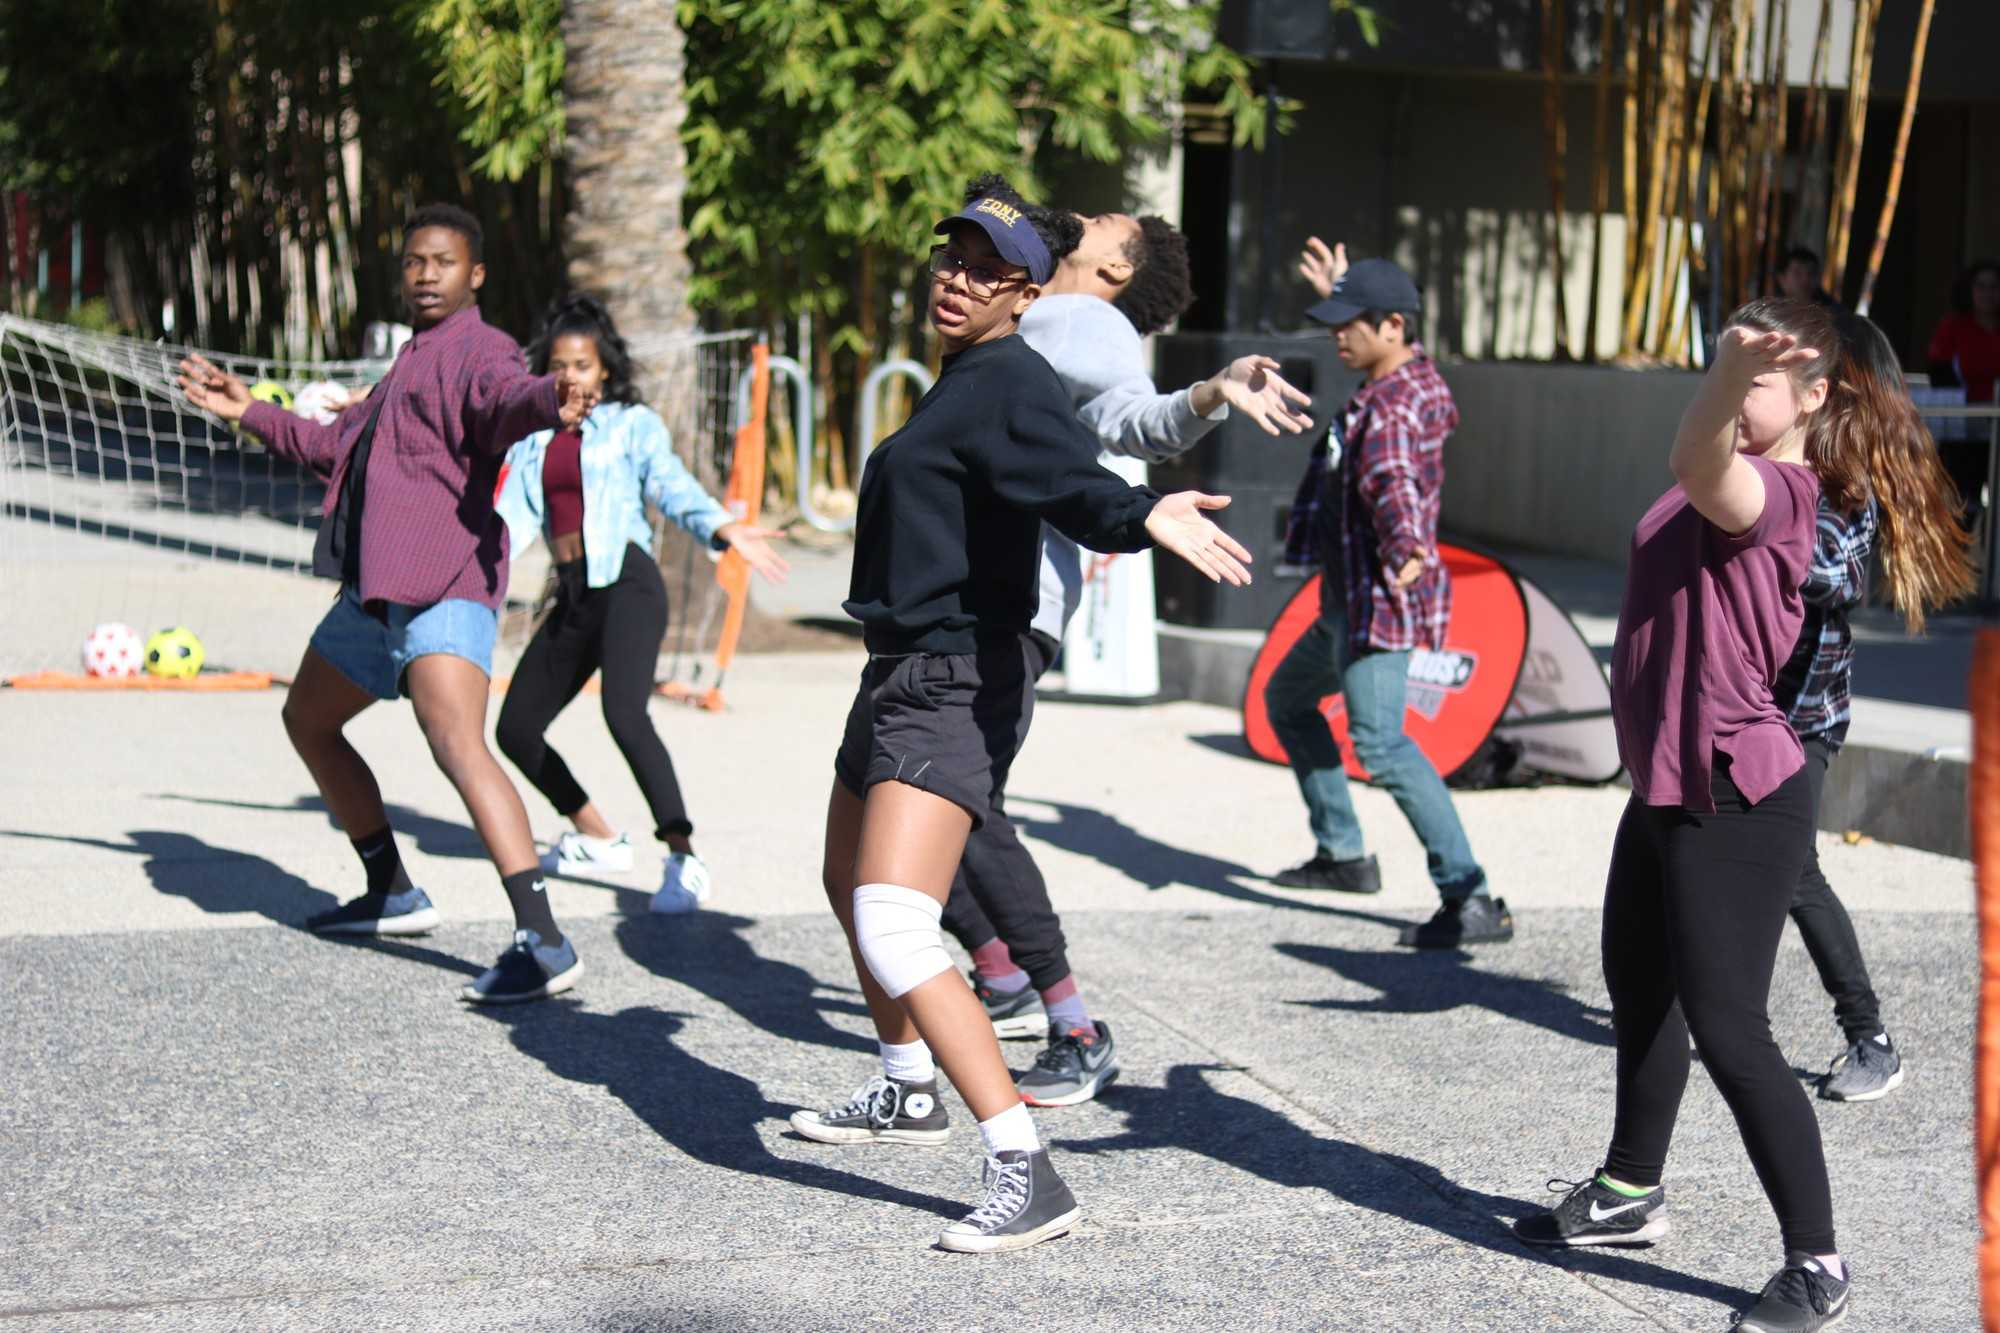 CSUN's Fasmode Dance Crew, takes Plaza Del Sol in the USU on Thursday, January 26th. Photo credit: Lauren Valencia